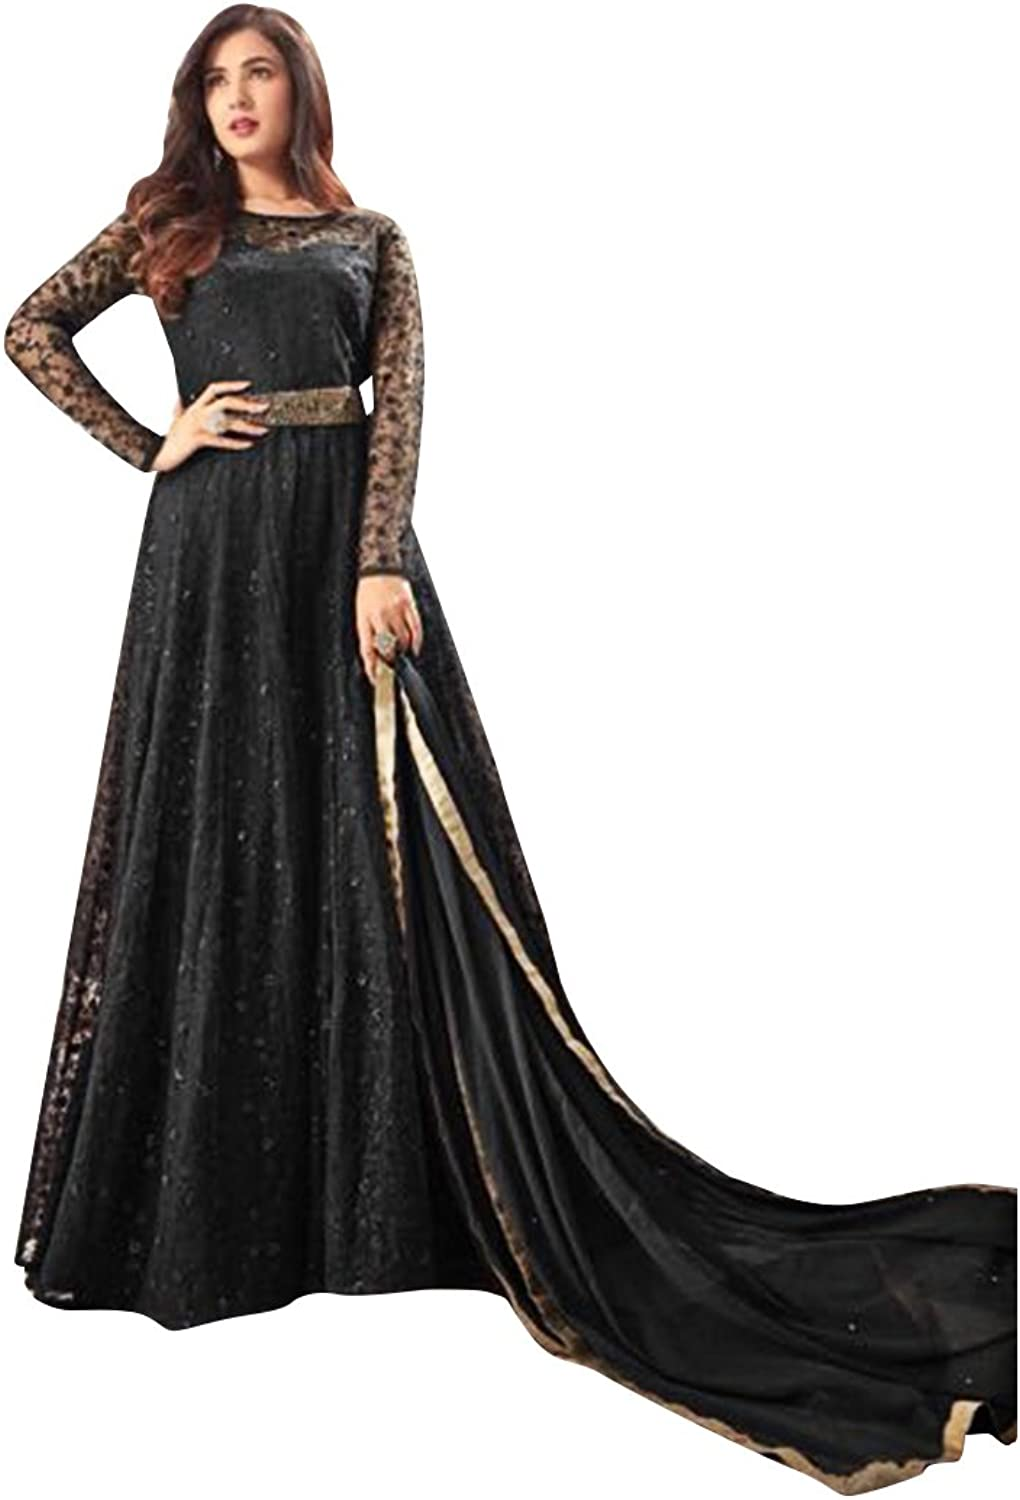 Bollywood Wedding Ceremony Long Anarkali Salwar Suit Muslim Bridal Gown Dress Ethnic 765